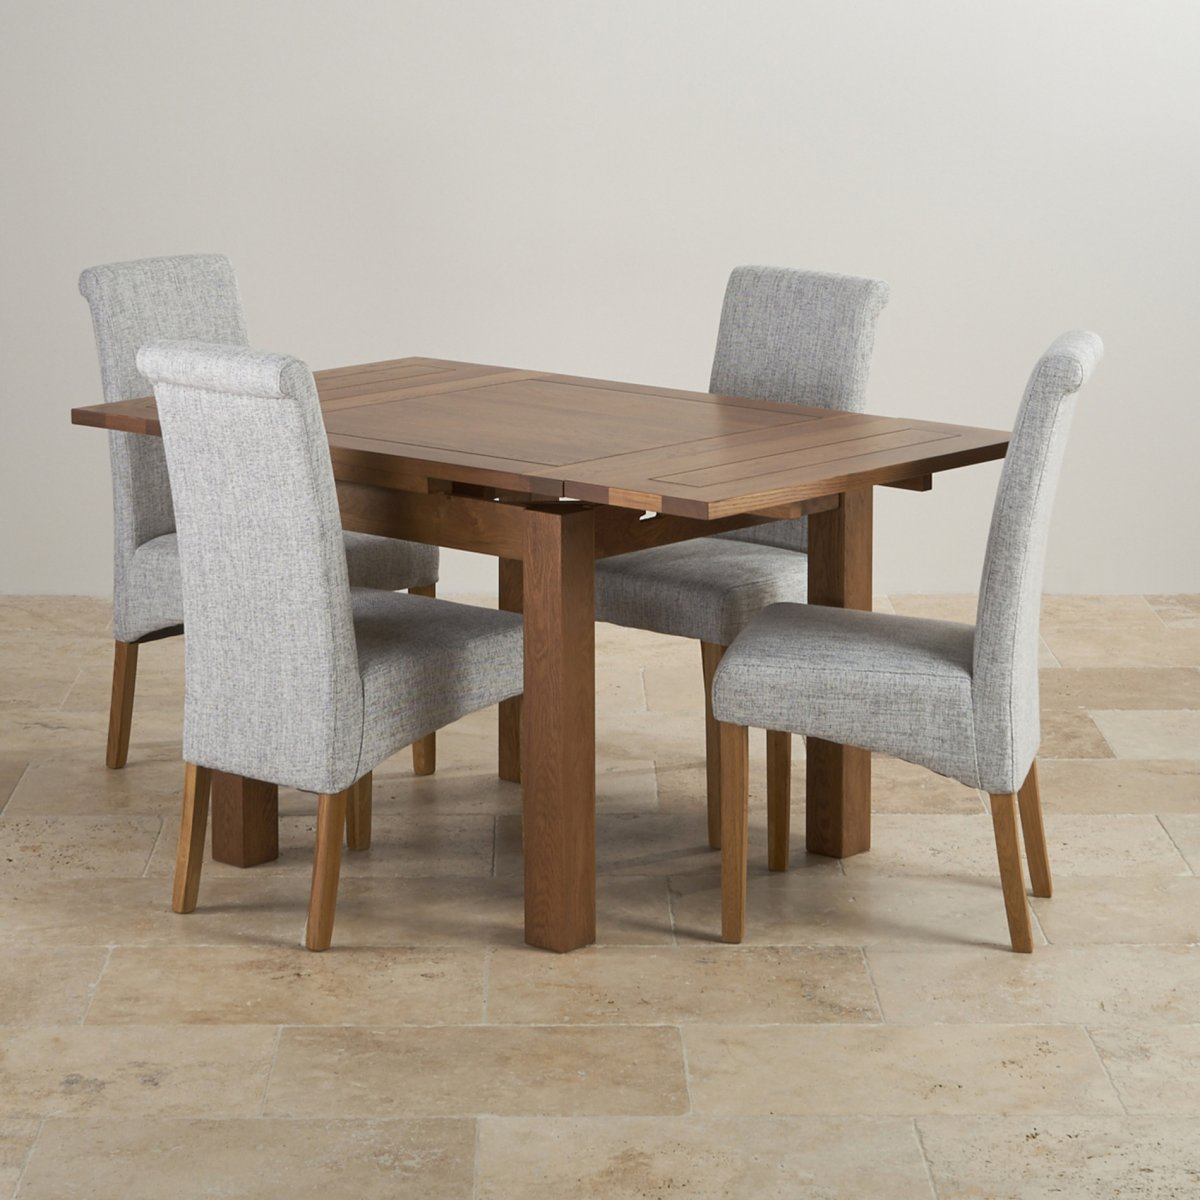 grey fabric oak dining chairs how to recover leather rustic 3ft table with 4